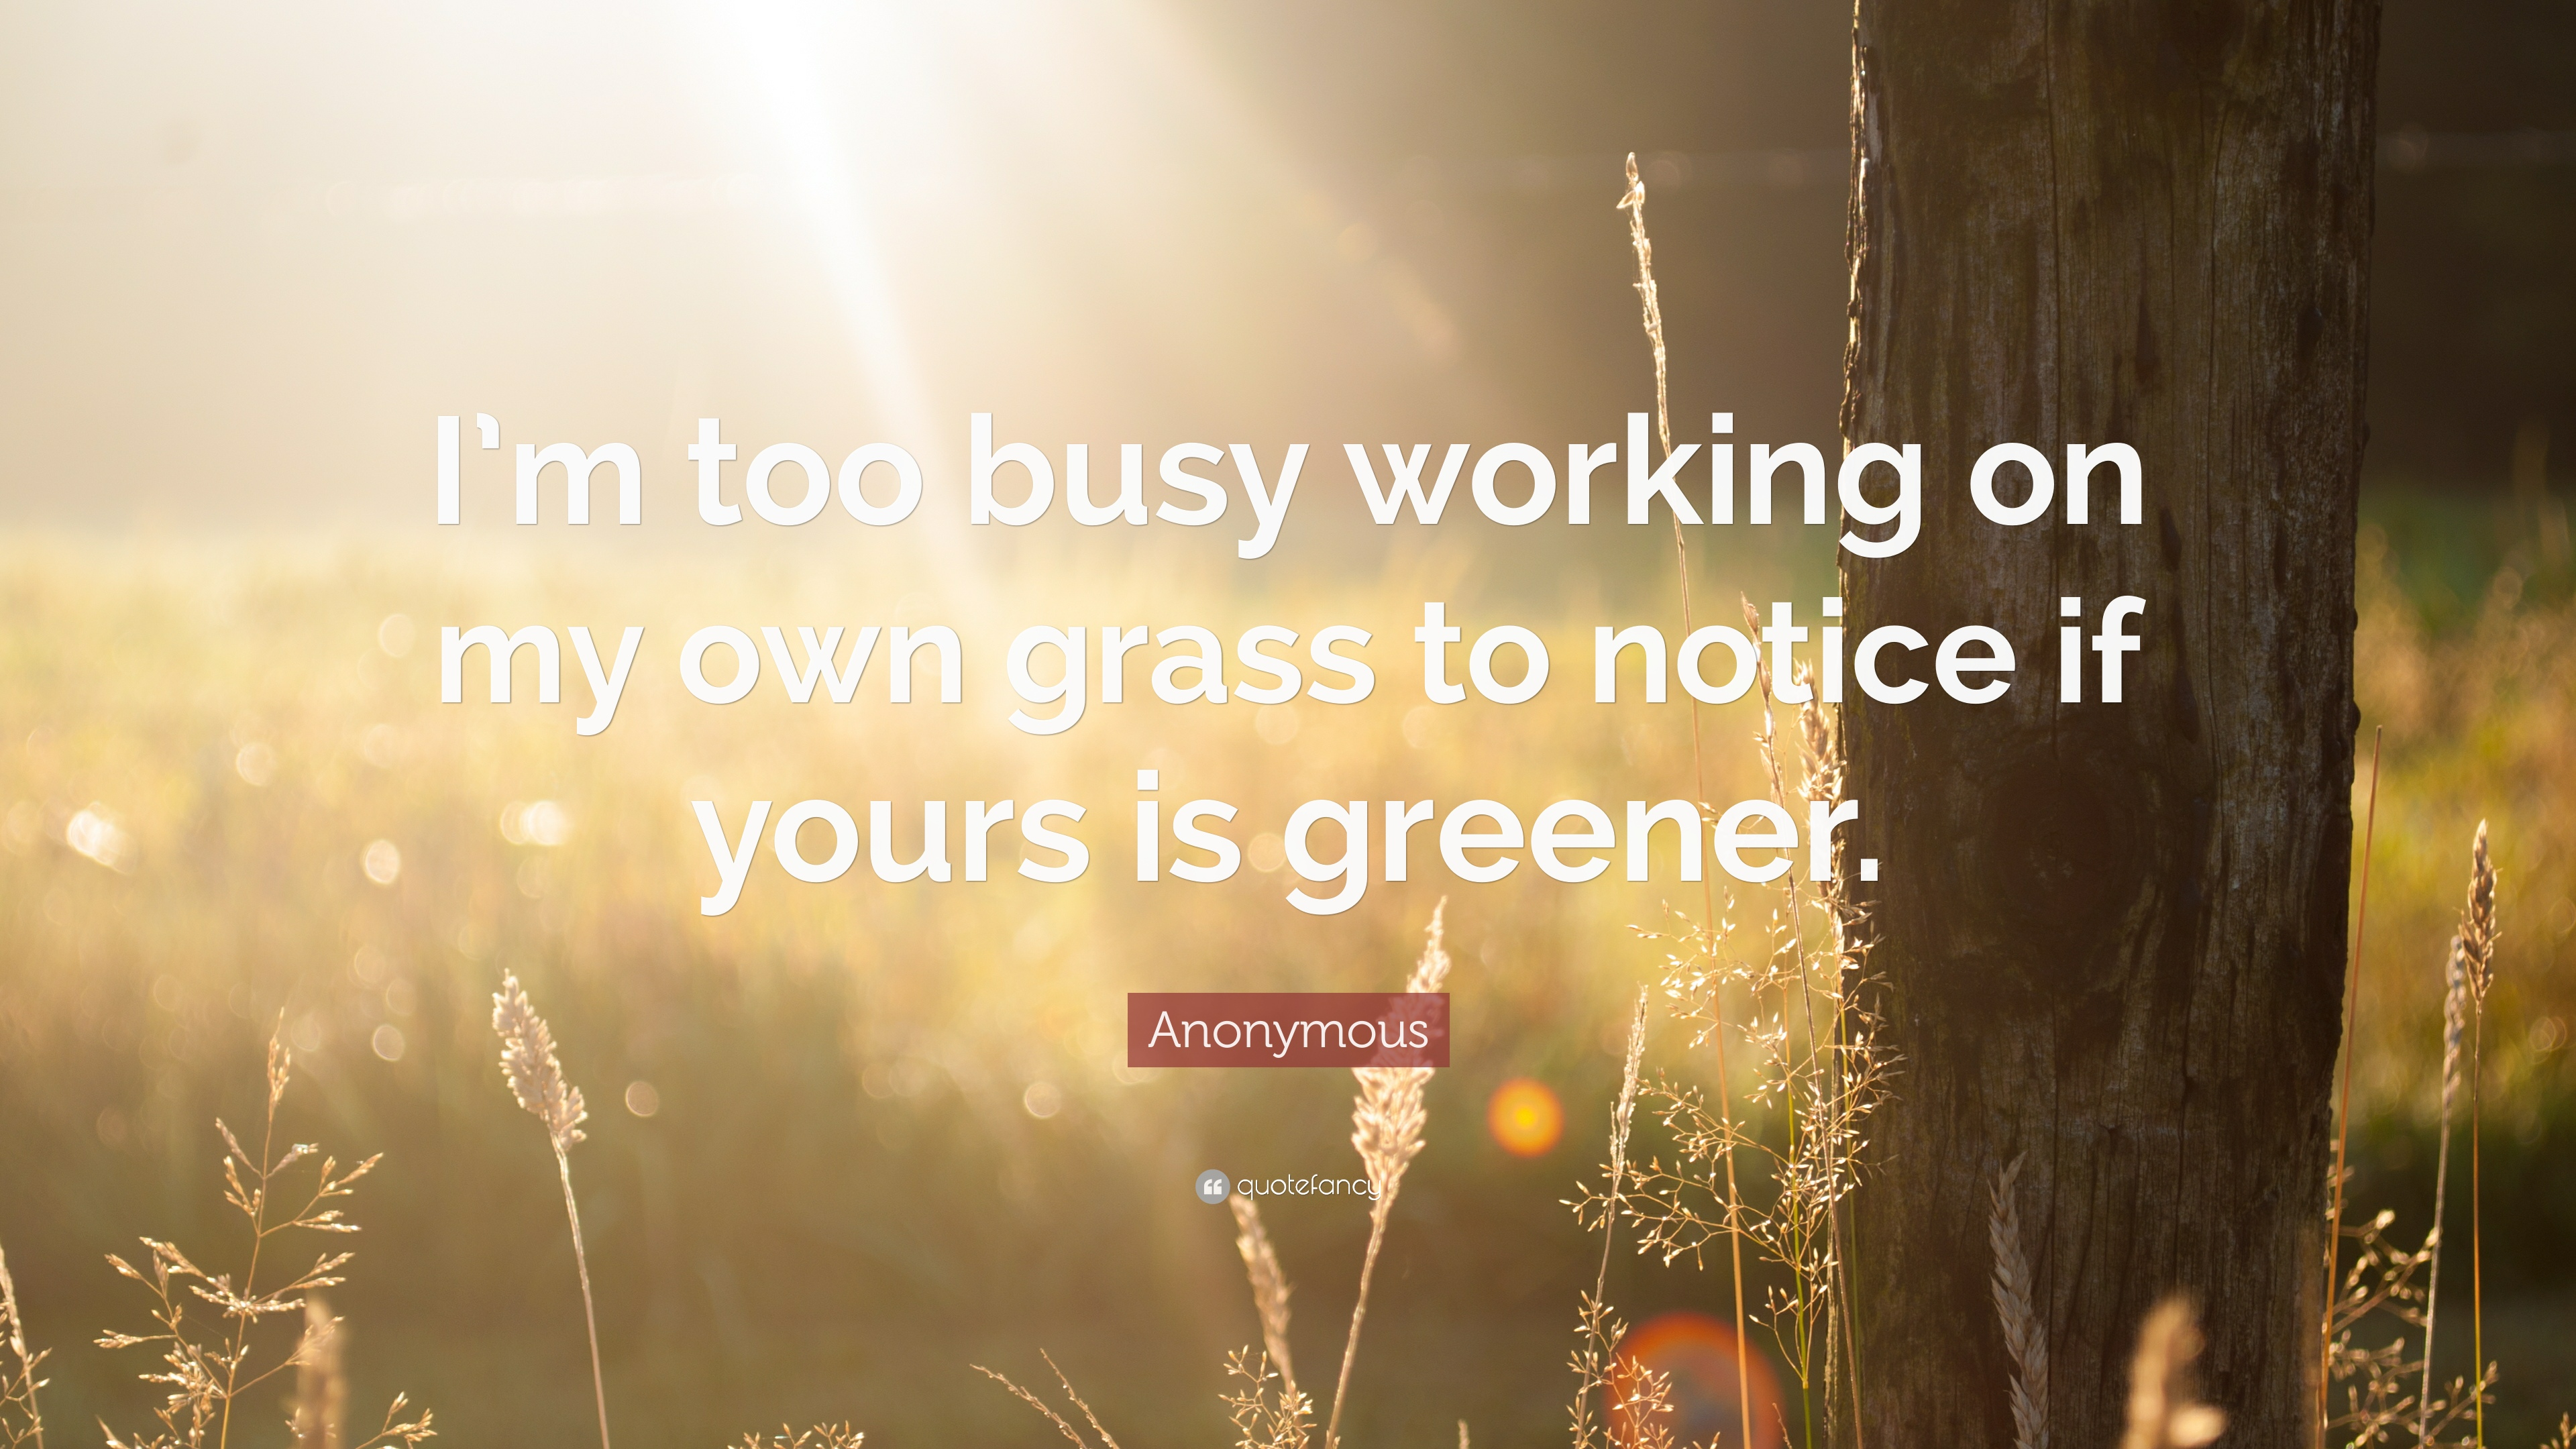 Busy Wallpaper With Quotes Anonymous Quote I M Too Busy Working On My Own Grass To